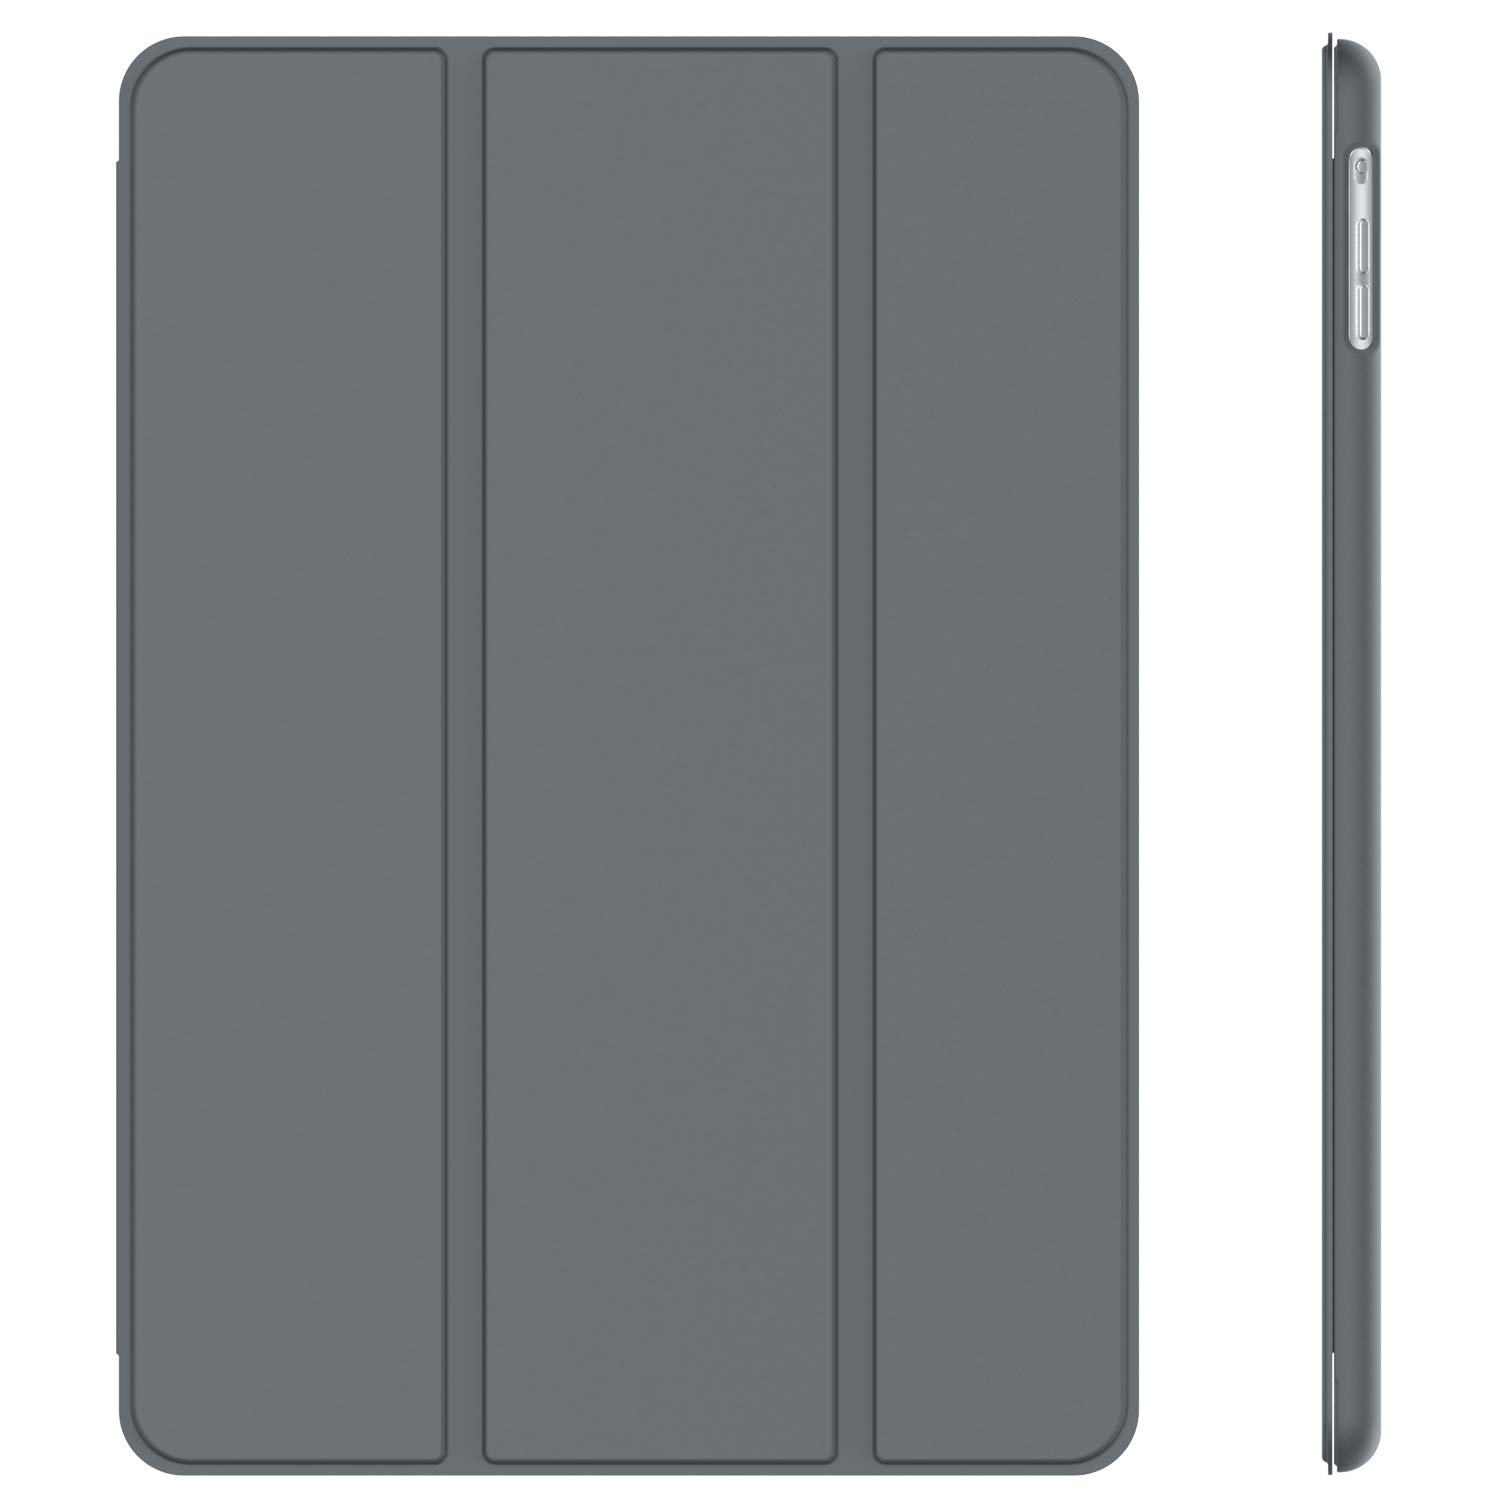 JETech Case for Apple iPad Air 1st Edition (NOT for iPad Air 2), Smart Cover with Auto Wake/Sleep, Dark Grey